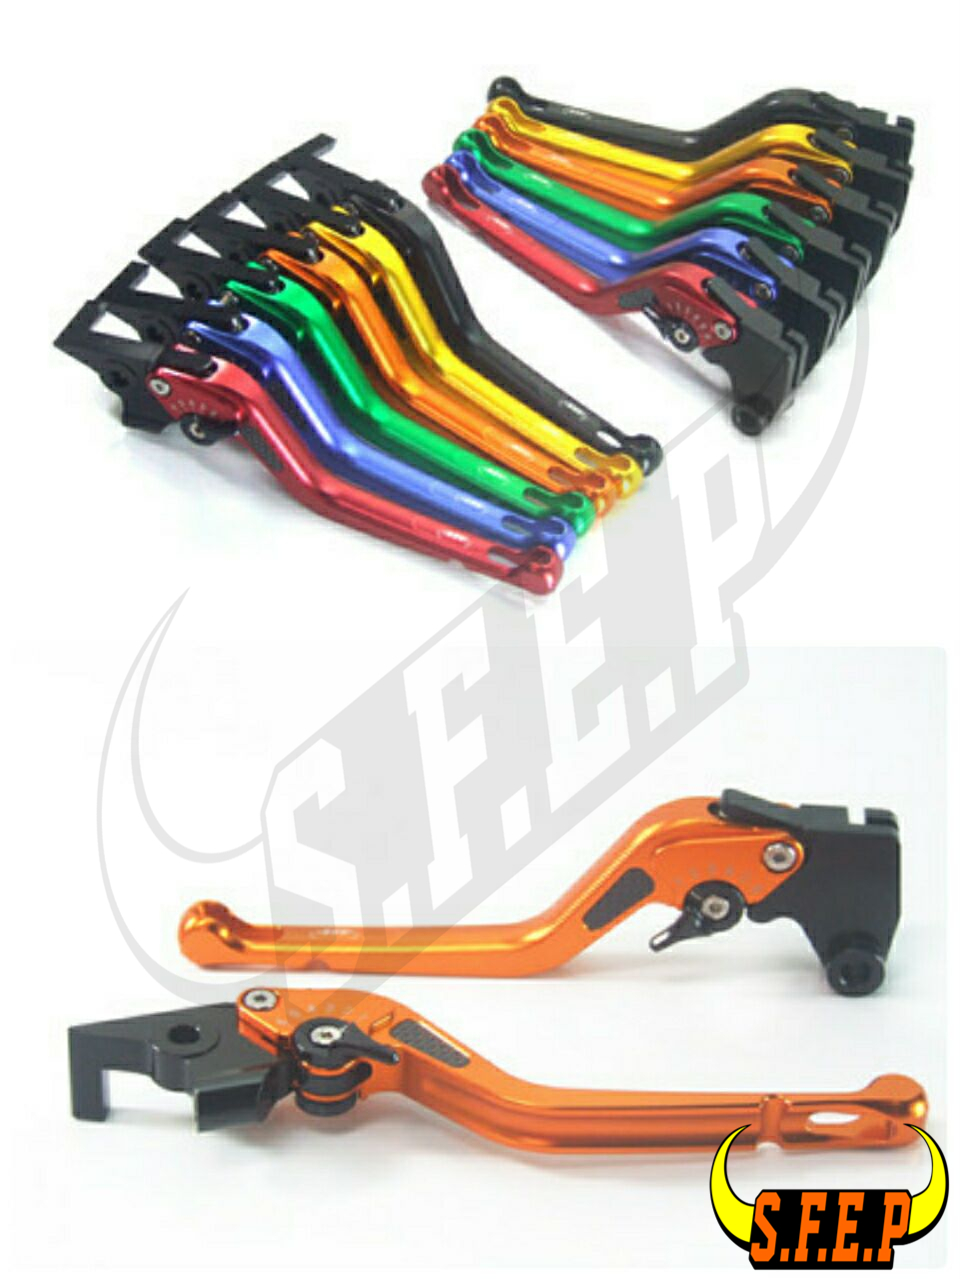 3D Long CNC Adjustable Motorcycle Brake and Clutch Levers with Carbon Fiber Inlay For KTM 990 SuperDuke 2005-2012 6 colors cnc adjustable motorcycle brake clutch levers for yamaha yzf r6 yzfr6 1999 2004 2005 2016 2017 logo yzf r6 lever